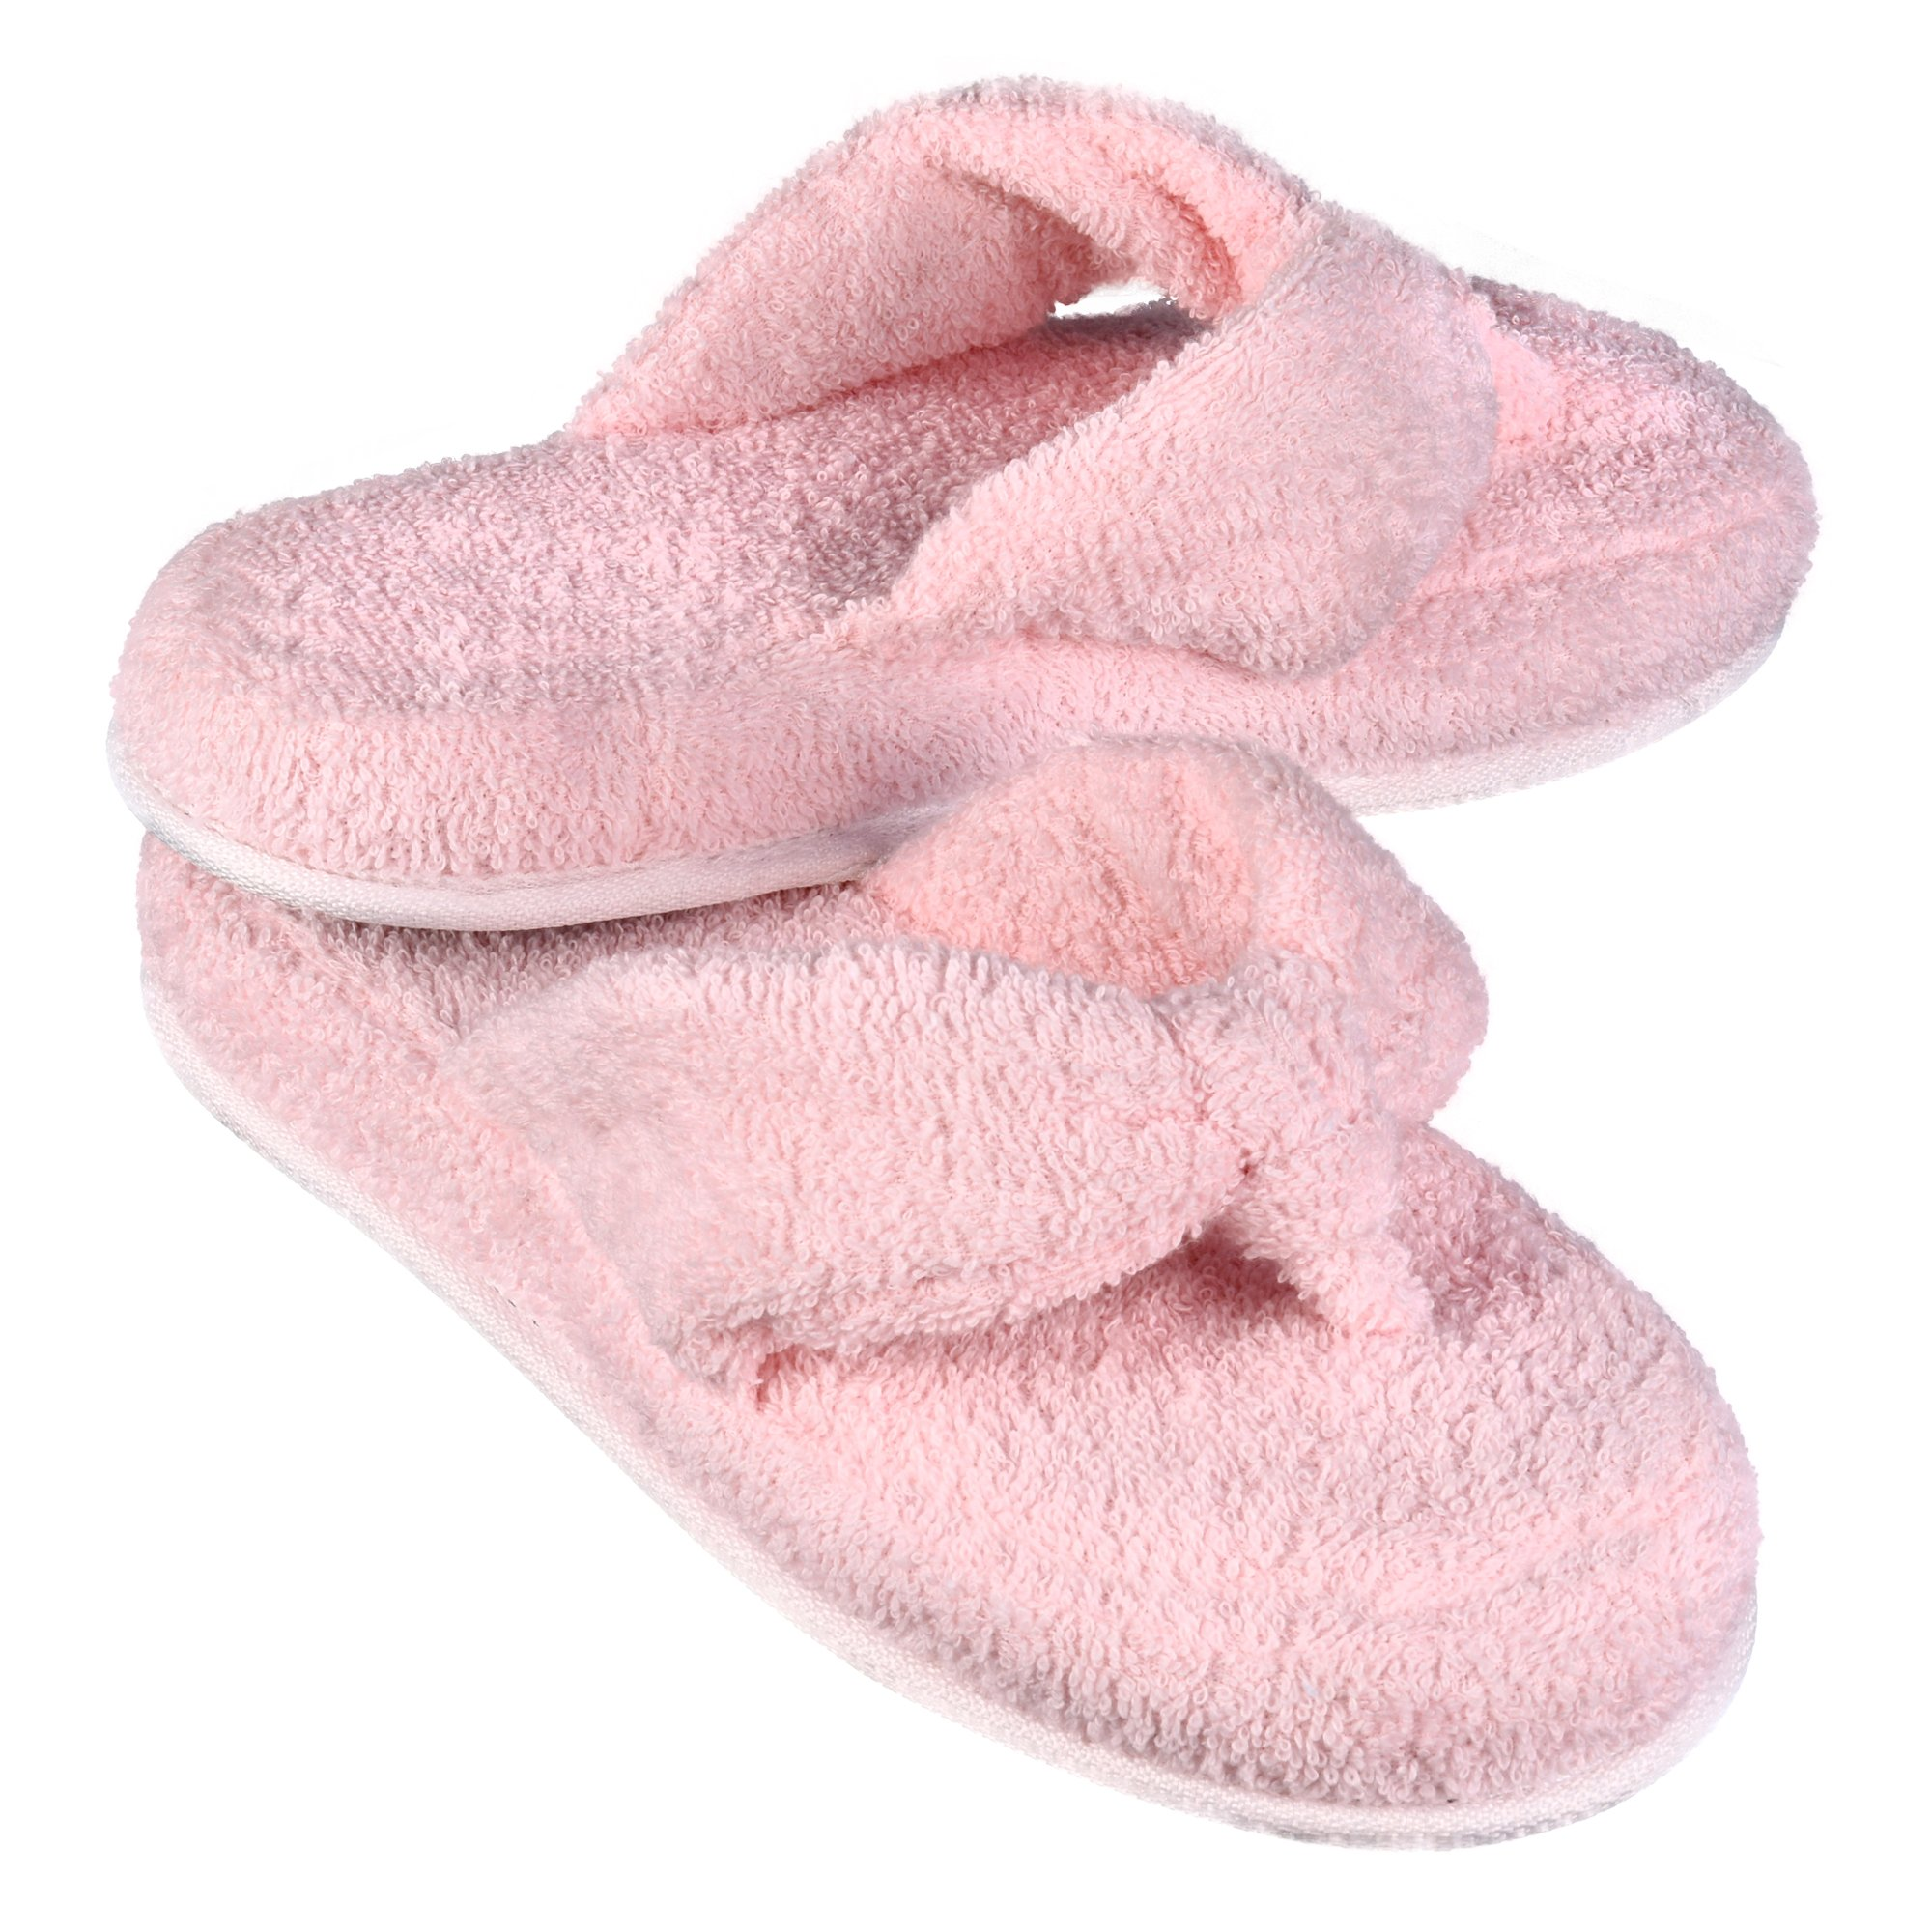 EuropeanSoftest Women's Cozy Memory Foam Soft Premium 100% Terry Cotton Cloth Spa Thong Flip Flops House Indoor Slippers (Large/9-10 B(M) US, Pink)